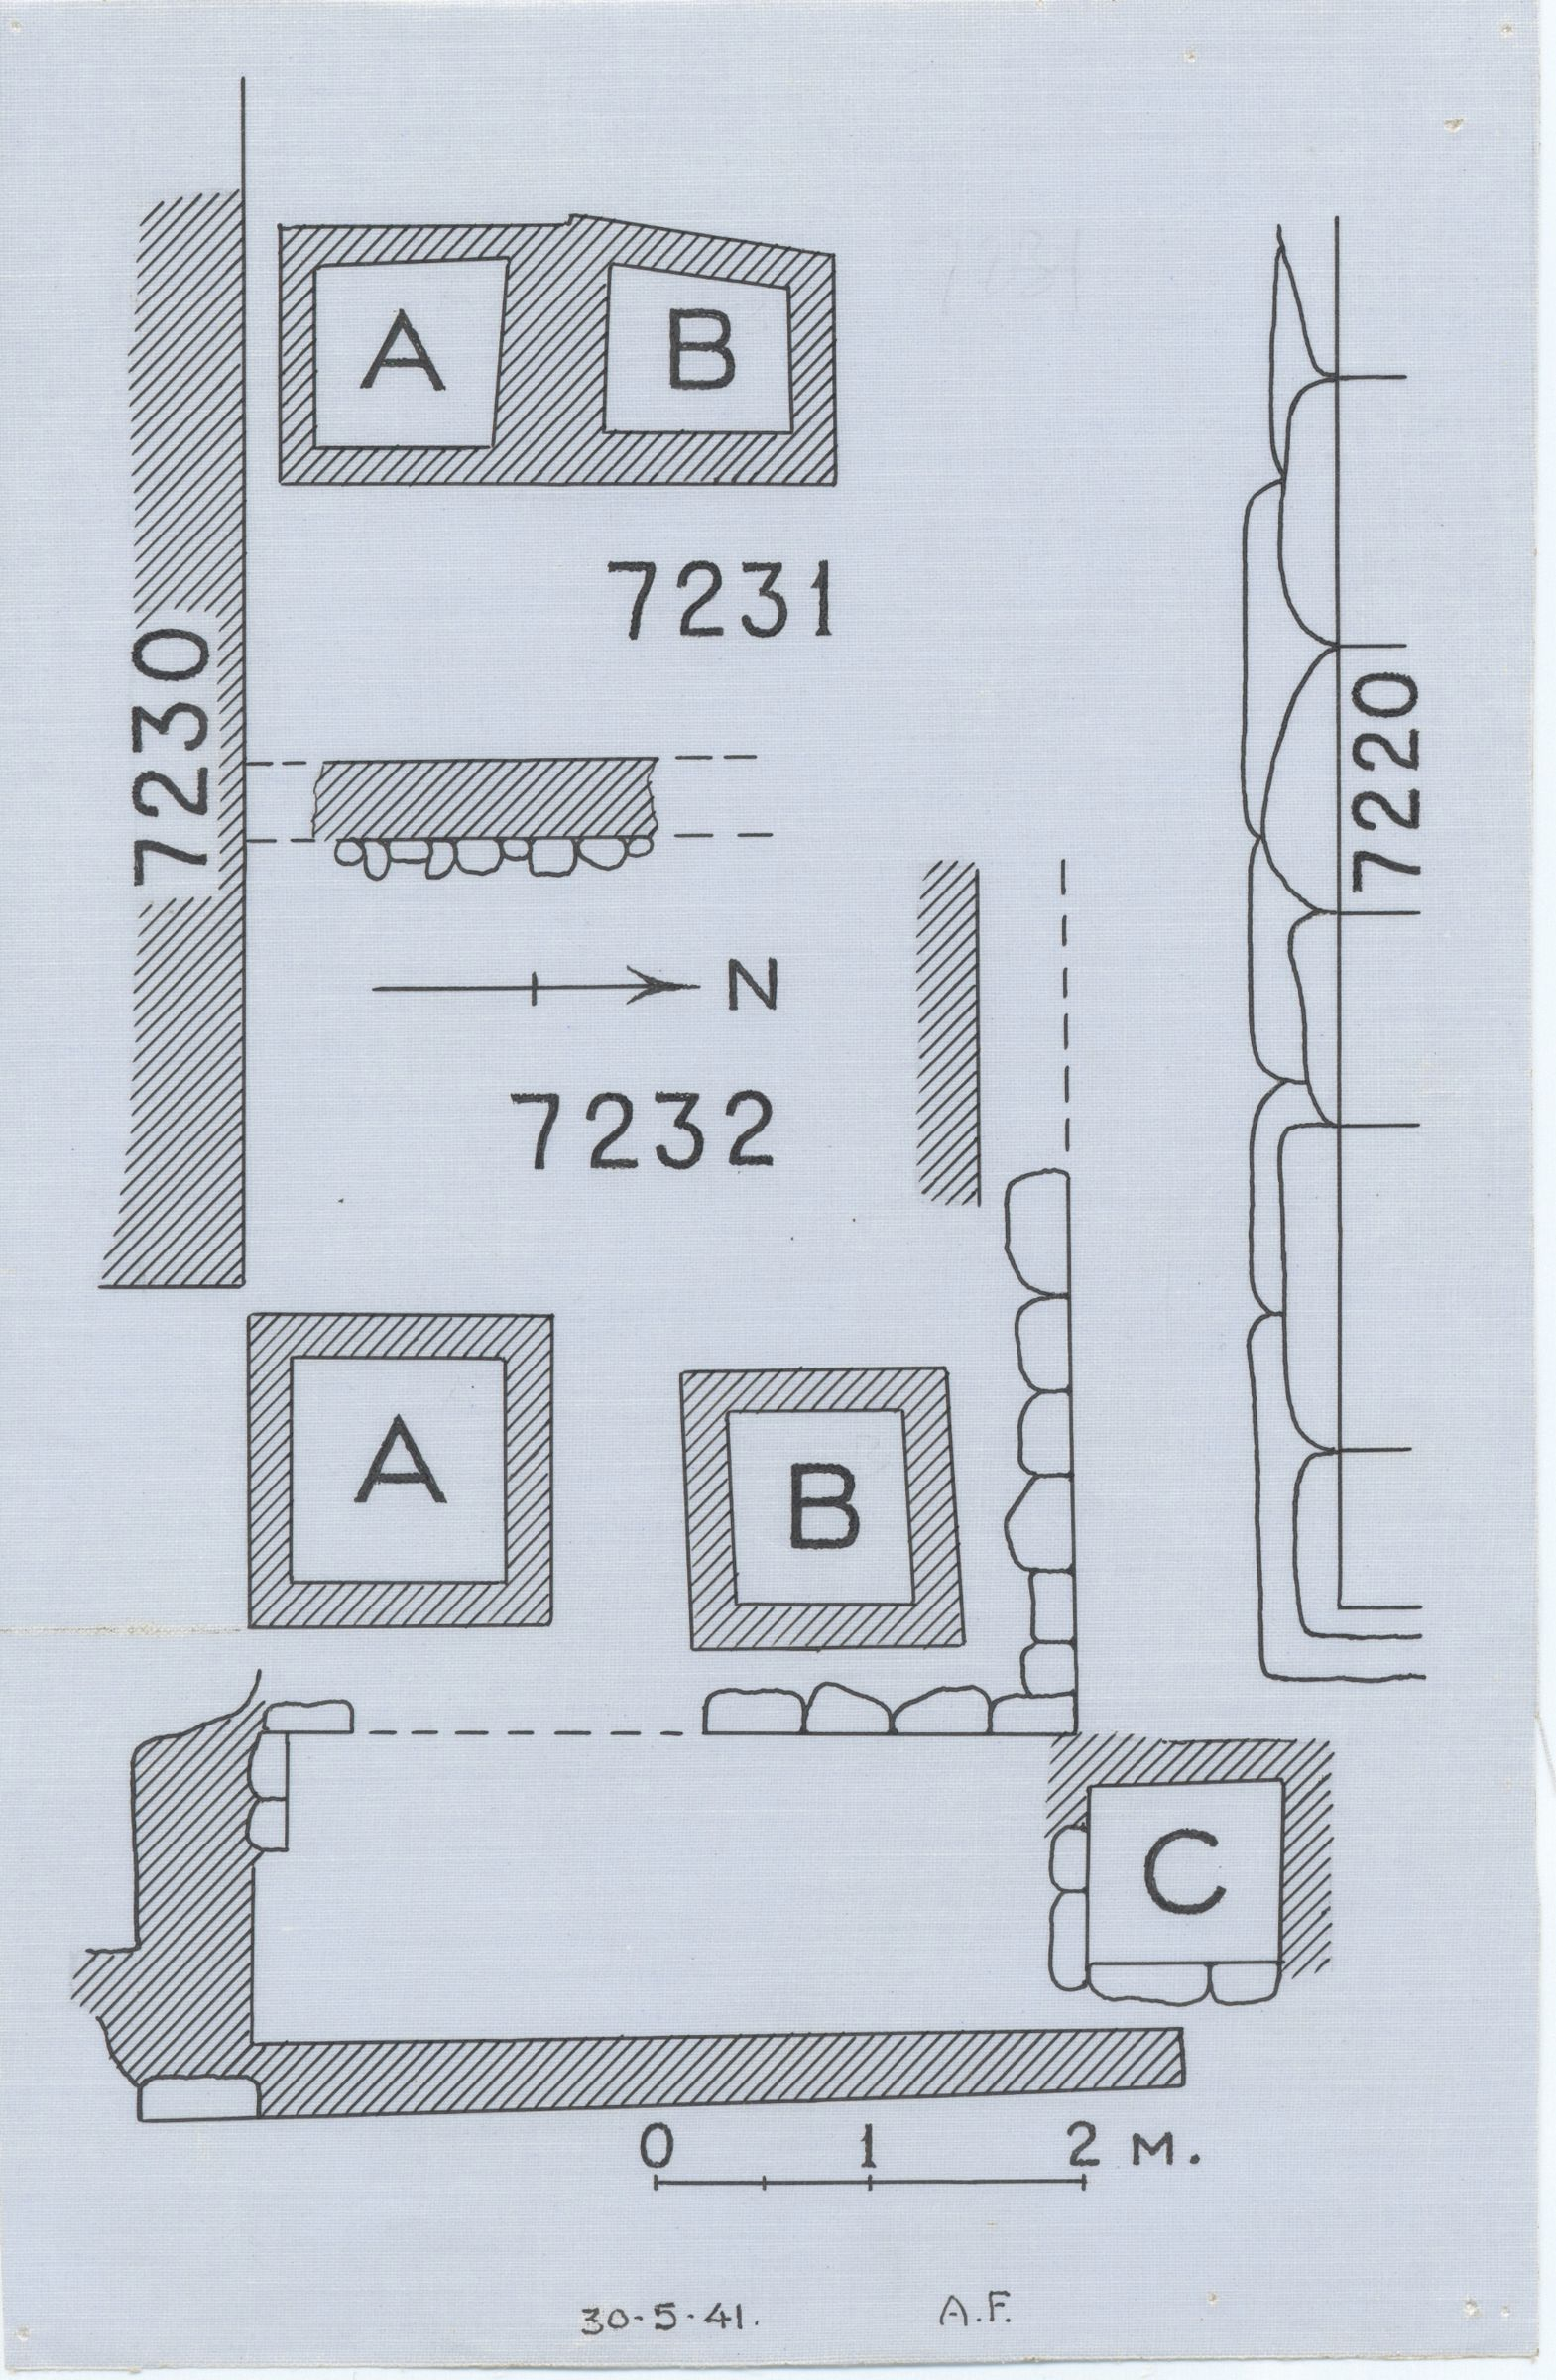 Maps and plans: Plan of G 7231 and G 7232, with position of G 7210-7220 and G 7230-7240